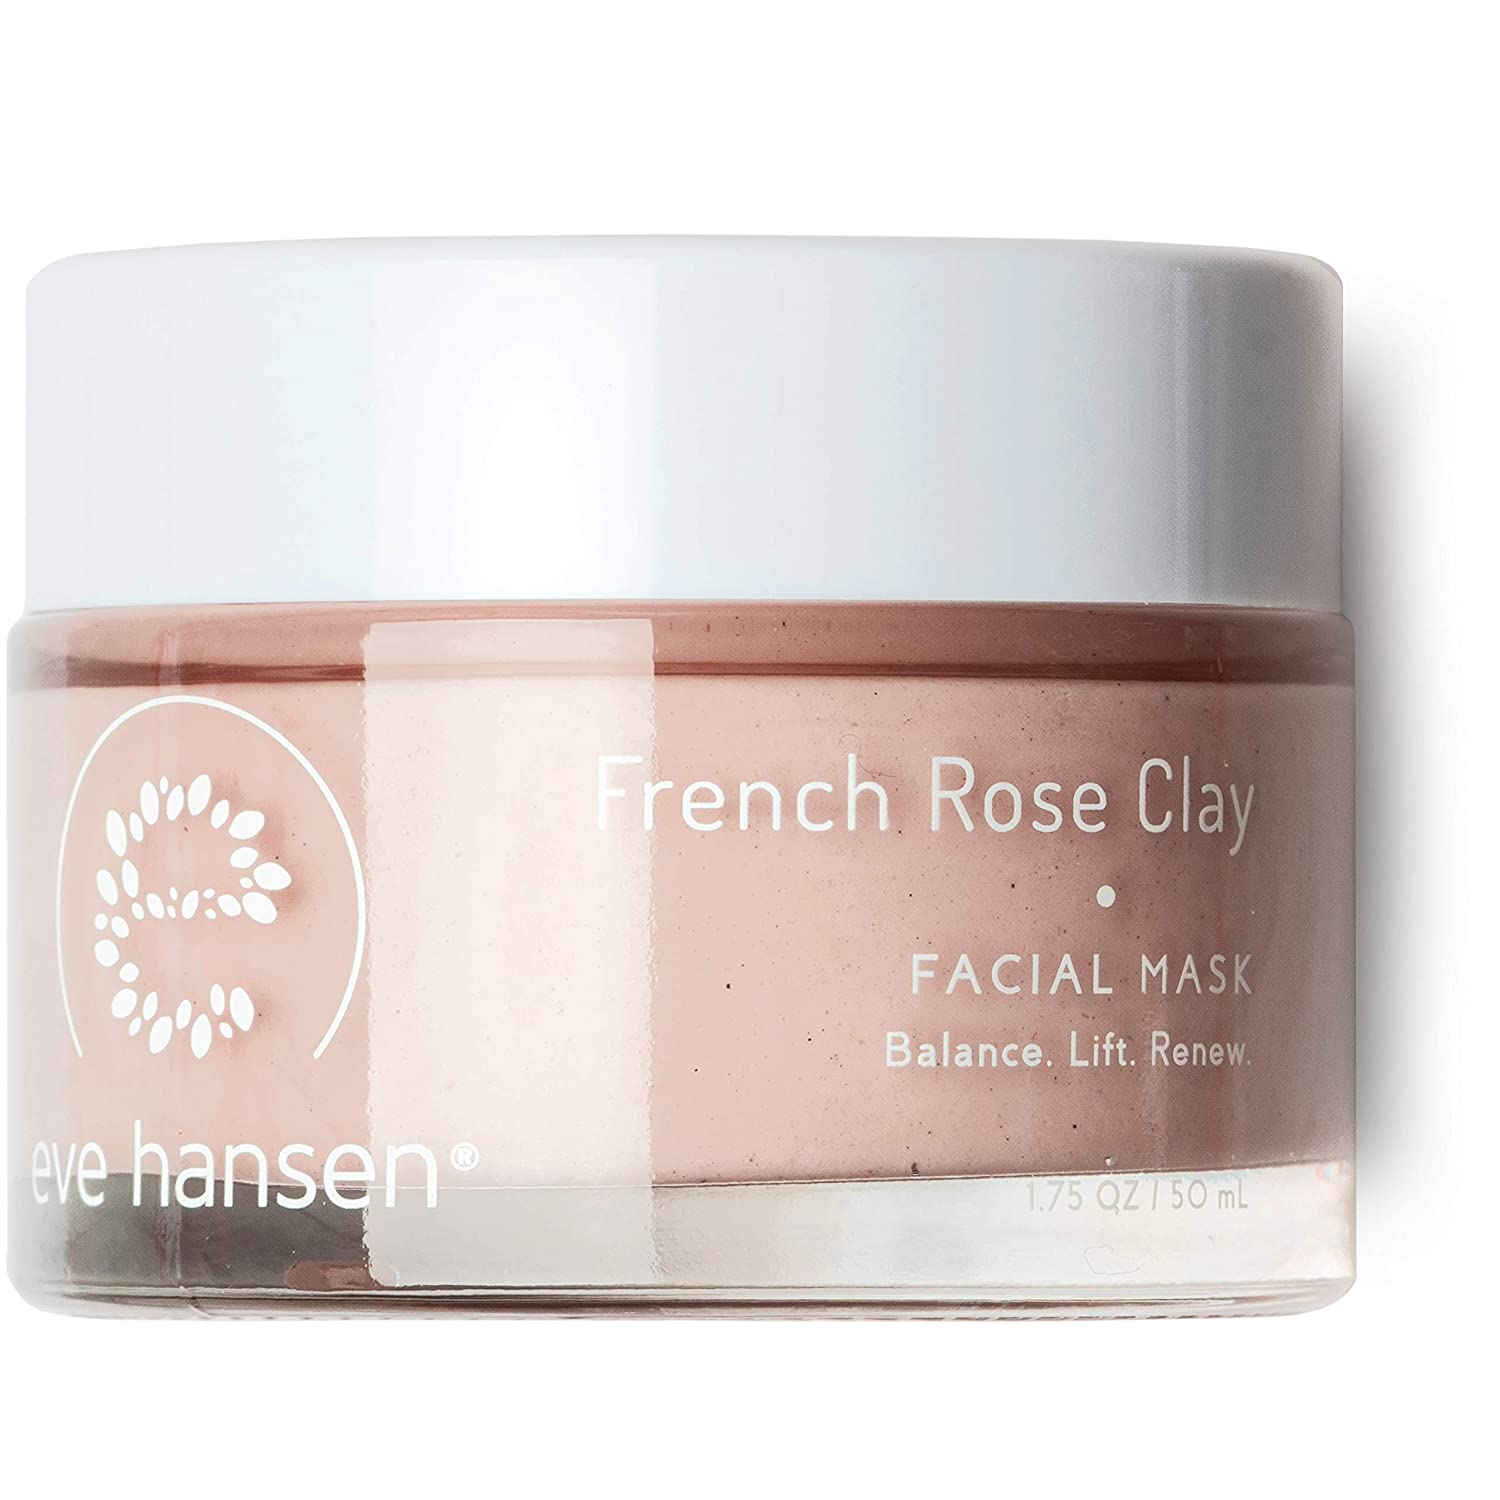 Amazon Com Eve Hansen French Rose Clay Face Mask Resurfacing Pink Clay Mask With Bentonite Kaolin Rosehip Moringa For Clogged Pores Blackheads Acne Scars Dark Spots 1 7oz Beauty